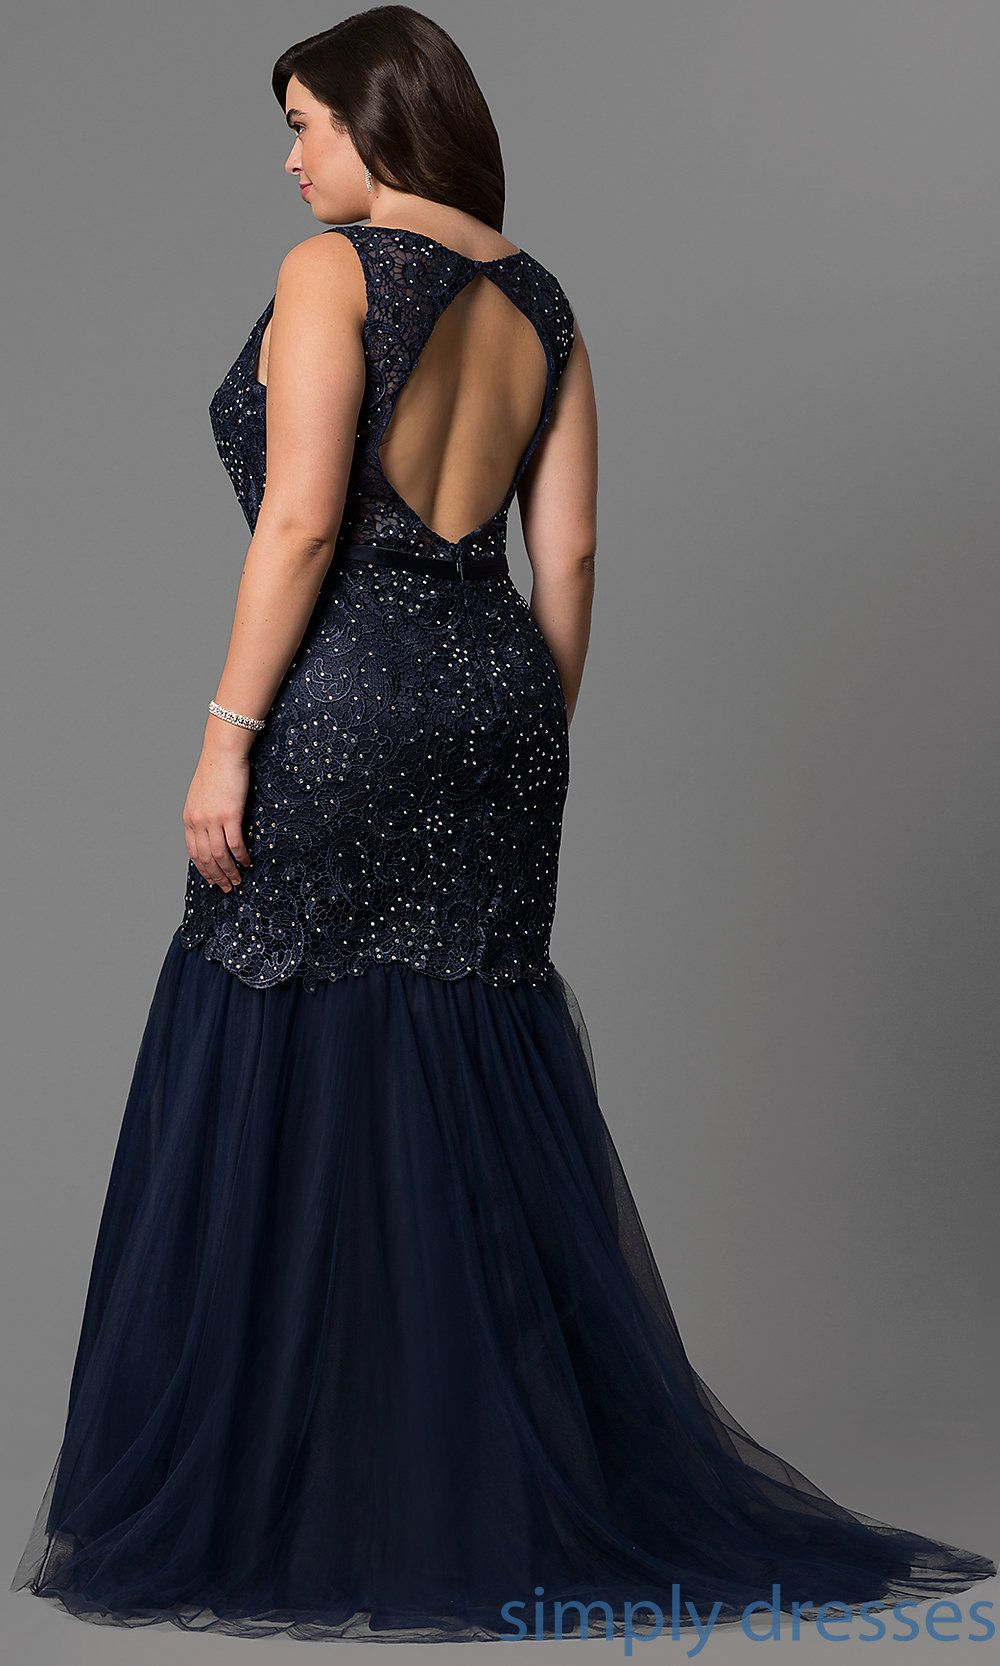 Dqpn long plussize navy blue formal dress with lace